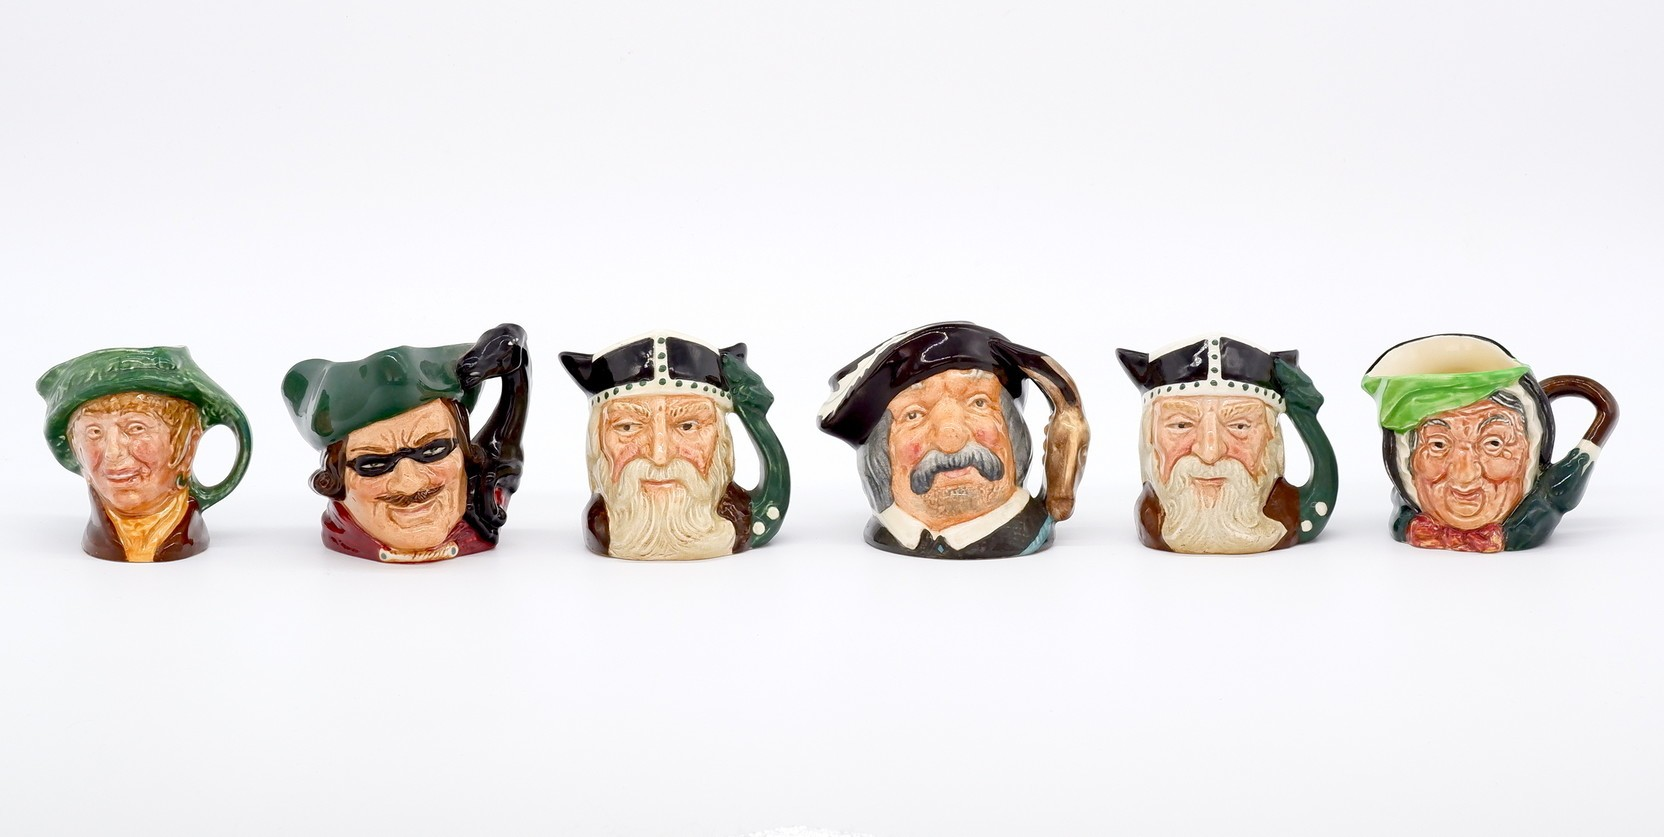 'Collection of Six Miniature Royal Doulton Toby Jugs'